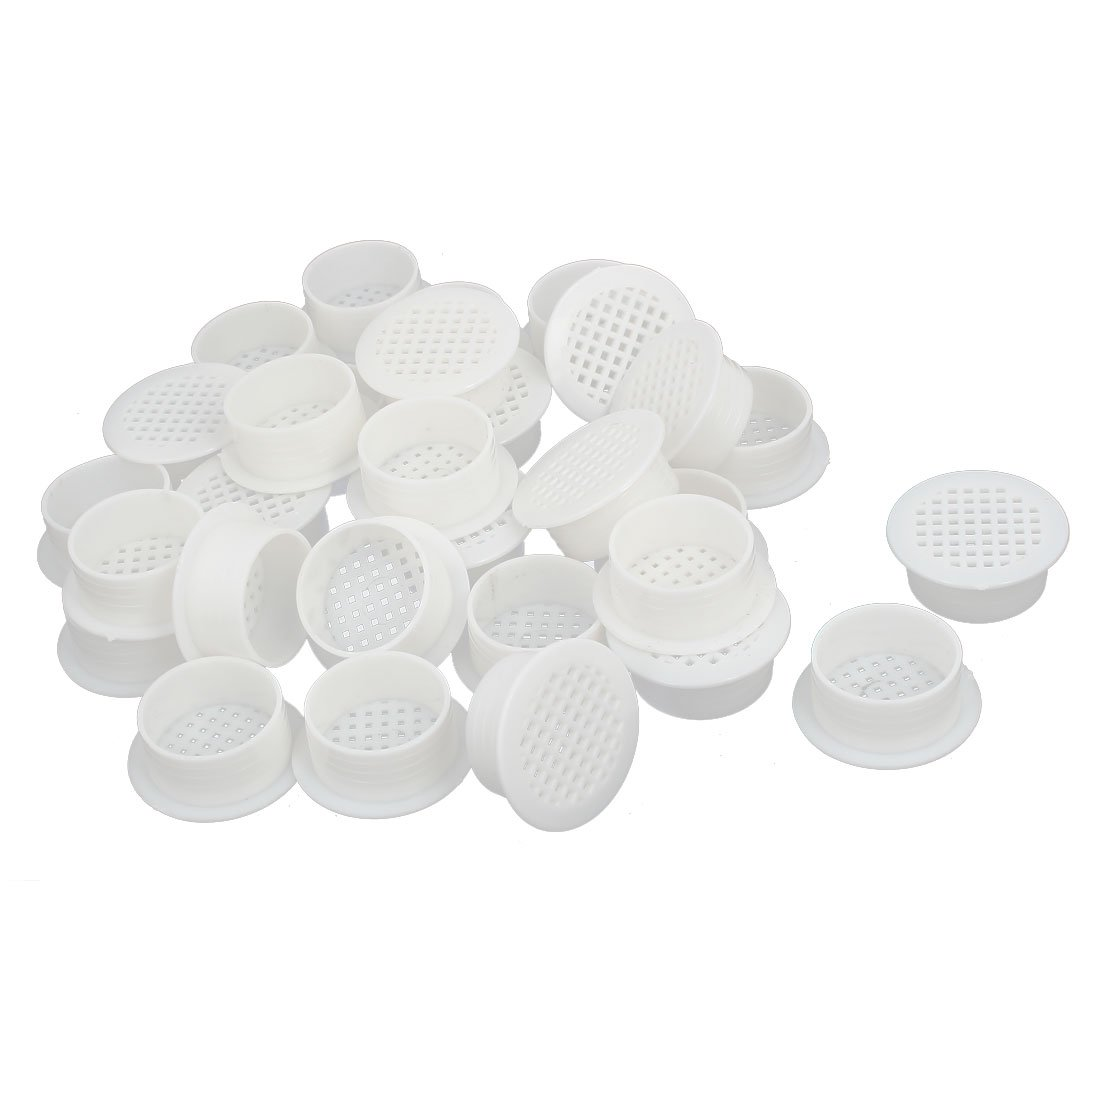 uxcell Shoes Cabinet 35mm Plastic Square Mesh Hole Air Vent Louver Cover White 30pcs by uxcell (Image #1)